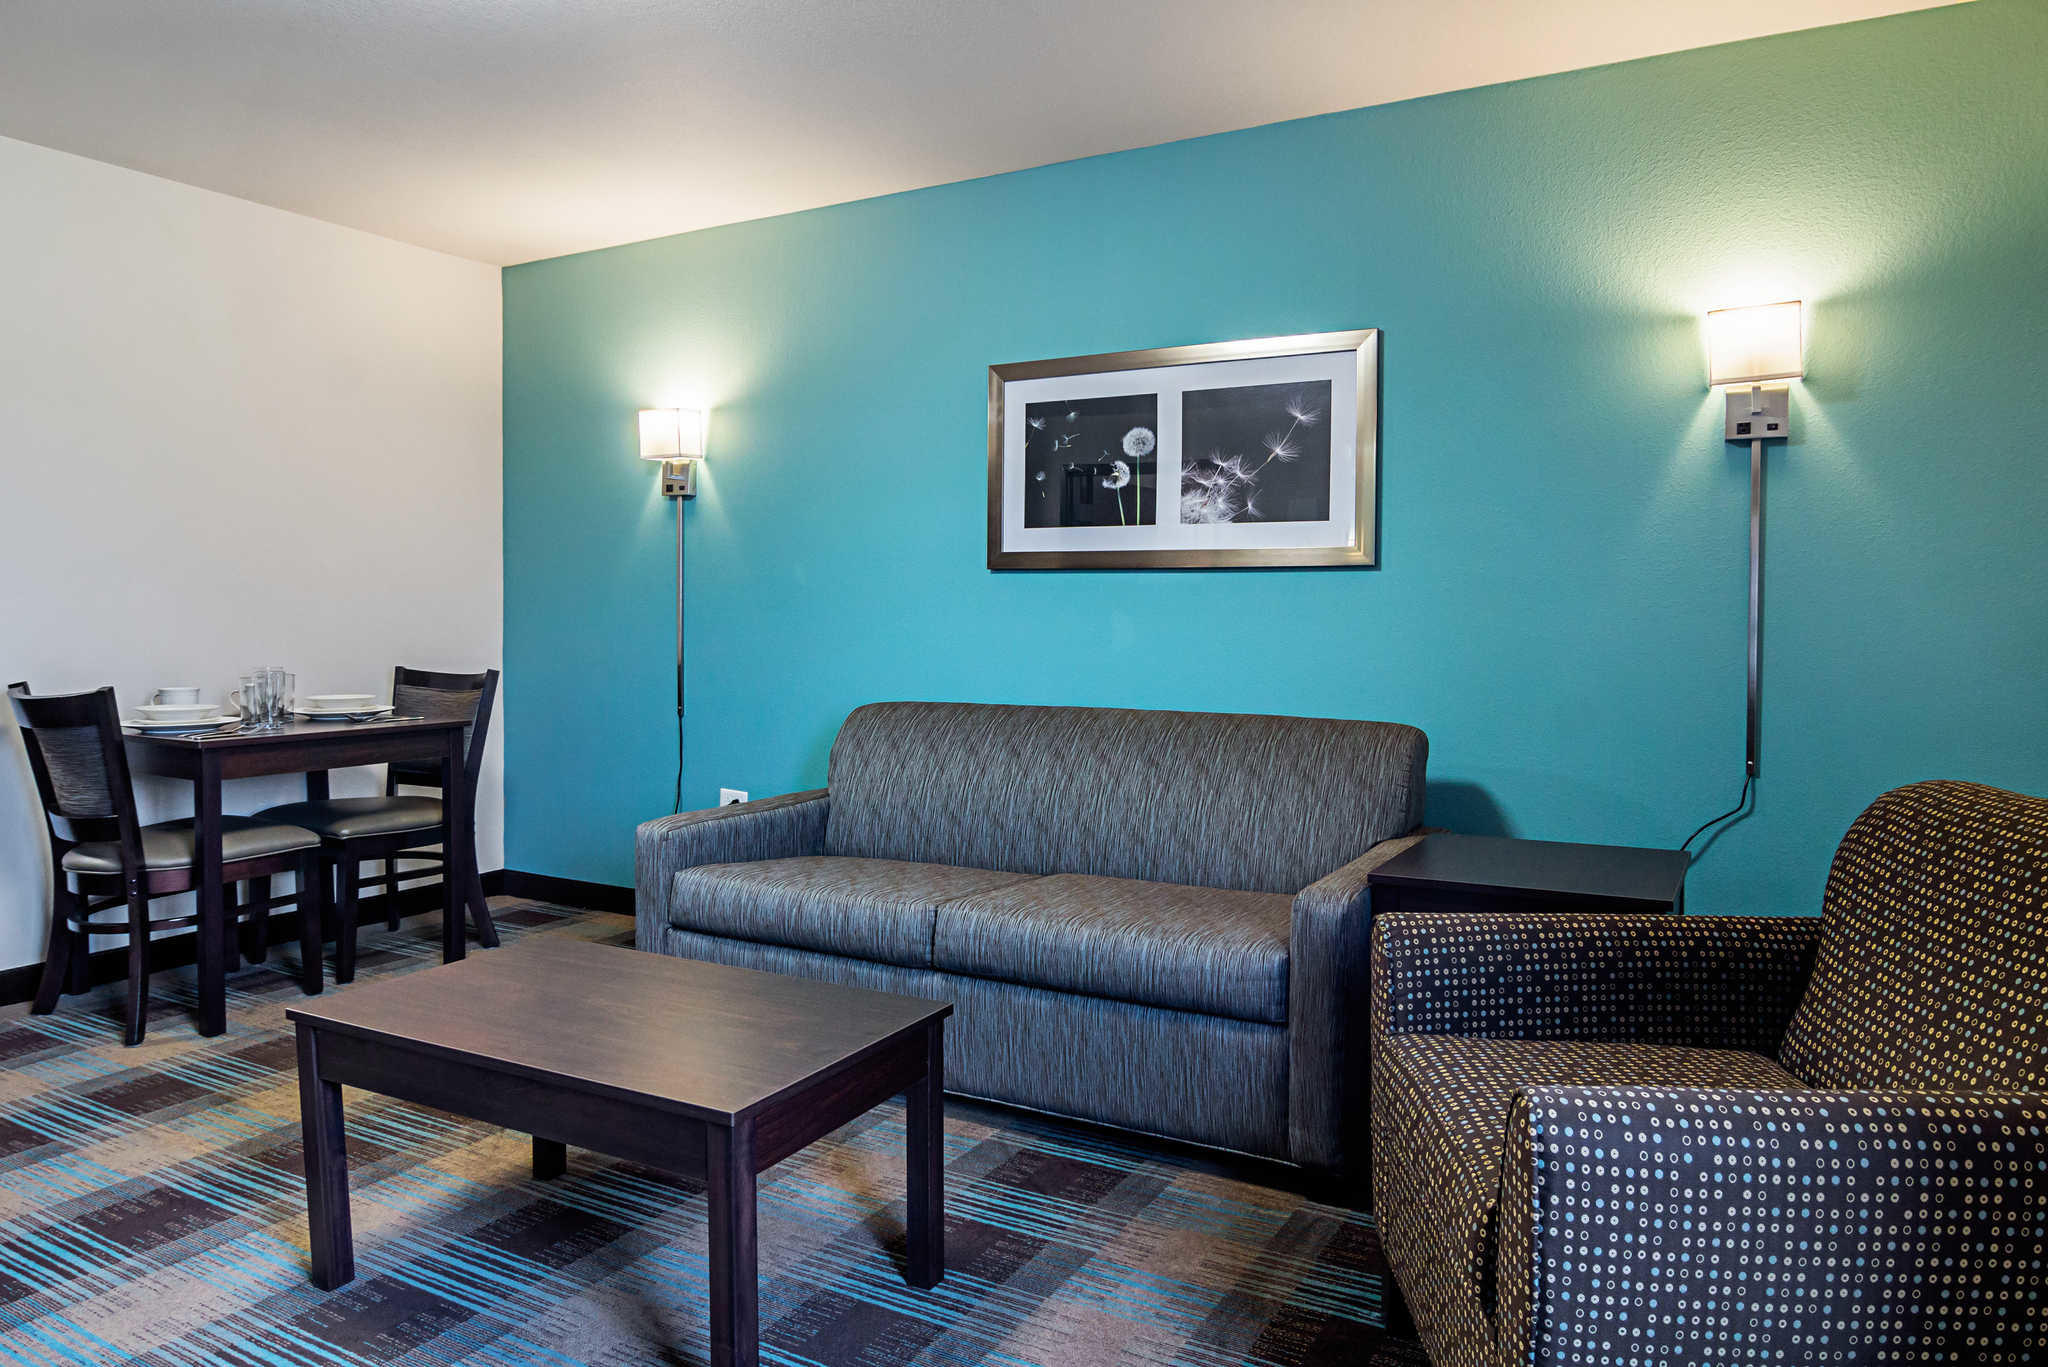 Suburban Extended Stay Hotel image 27